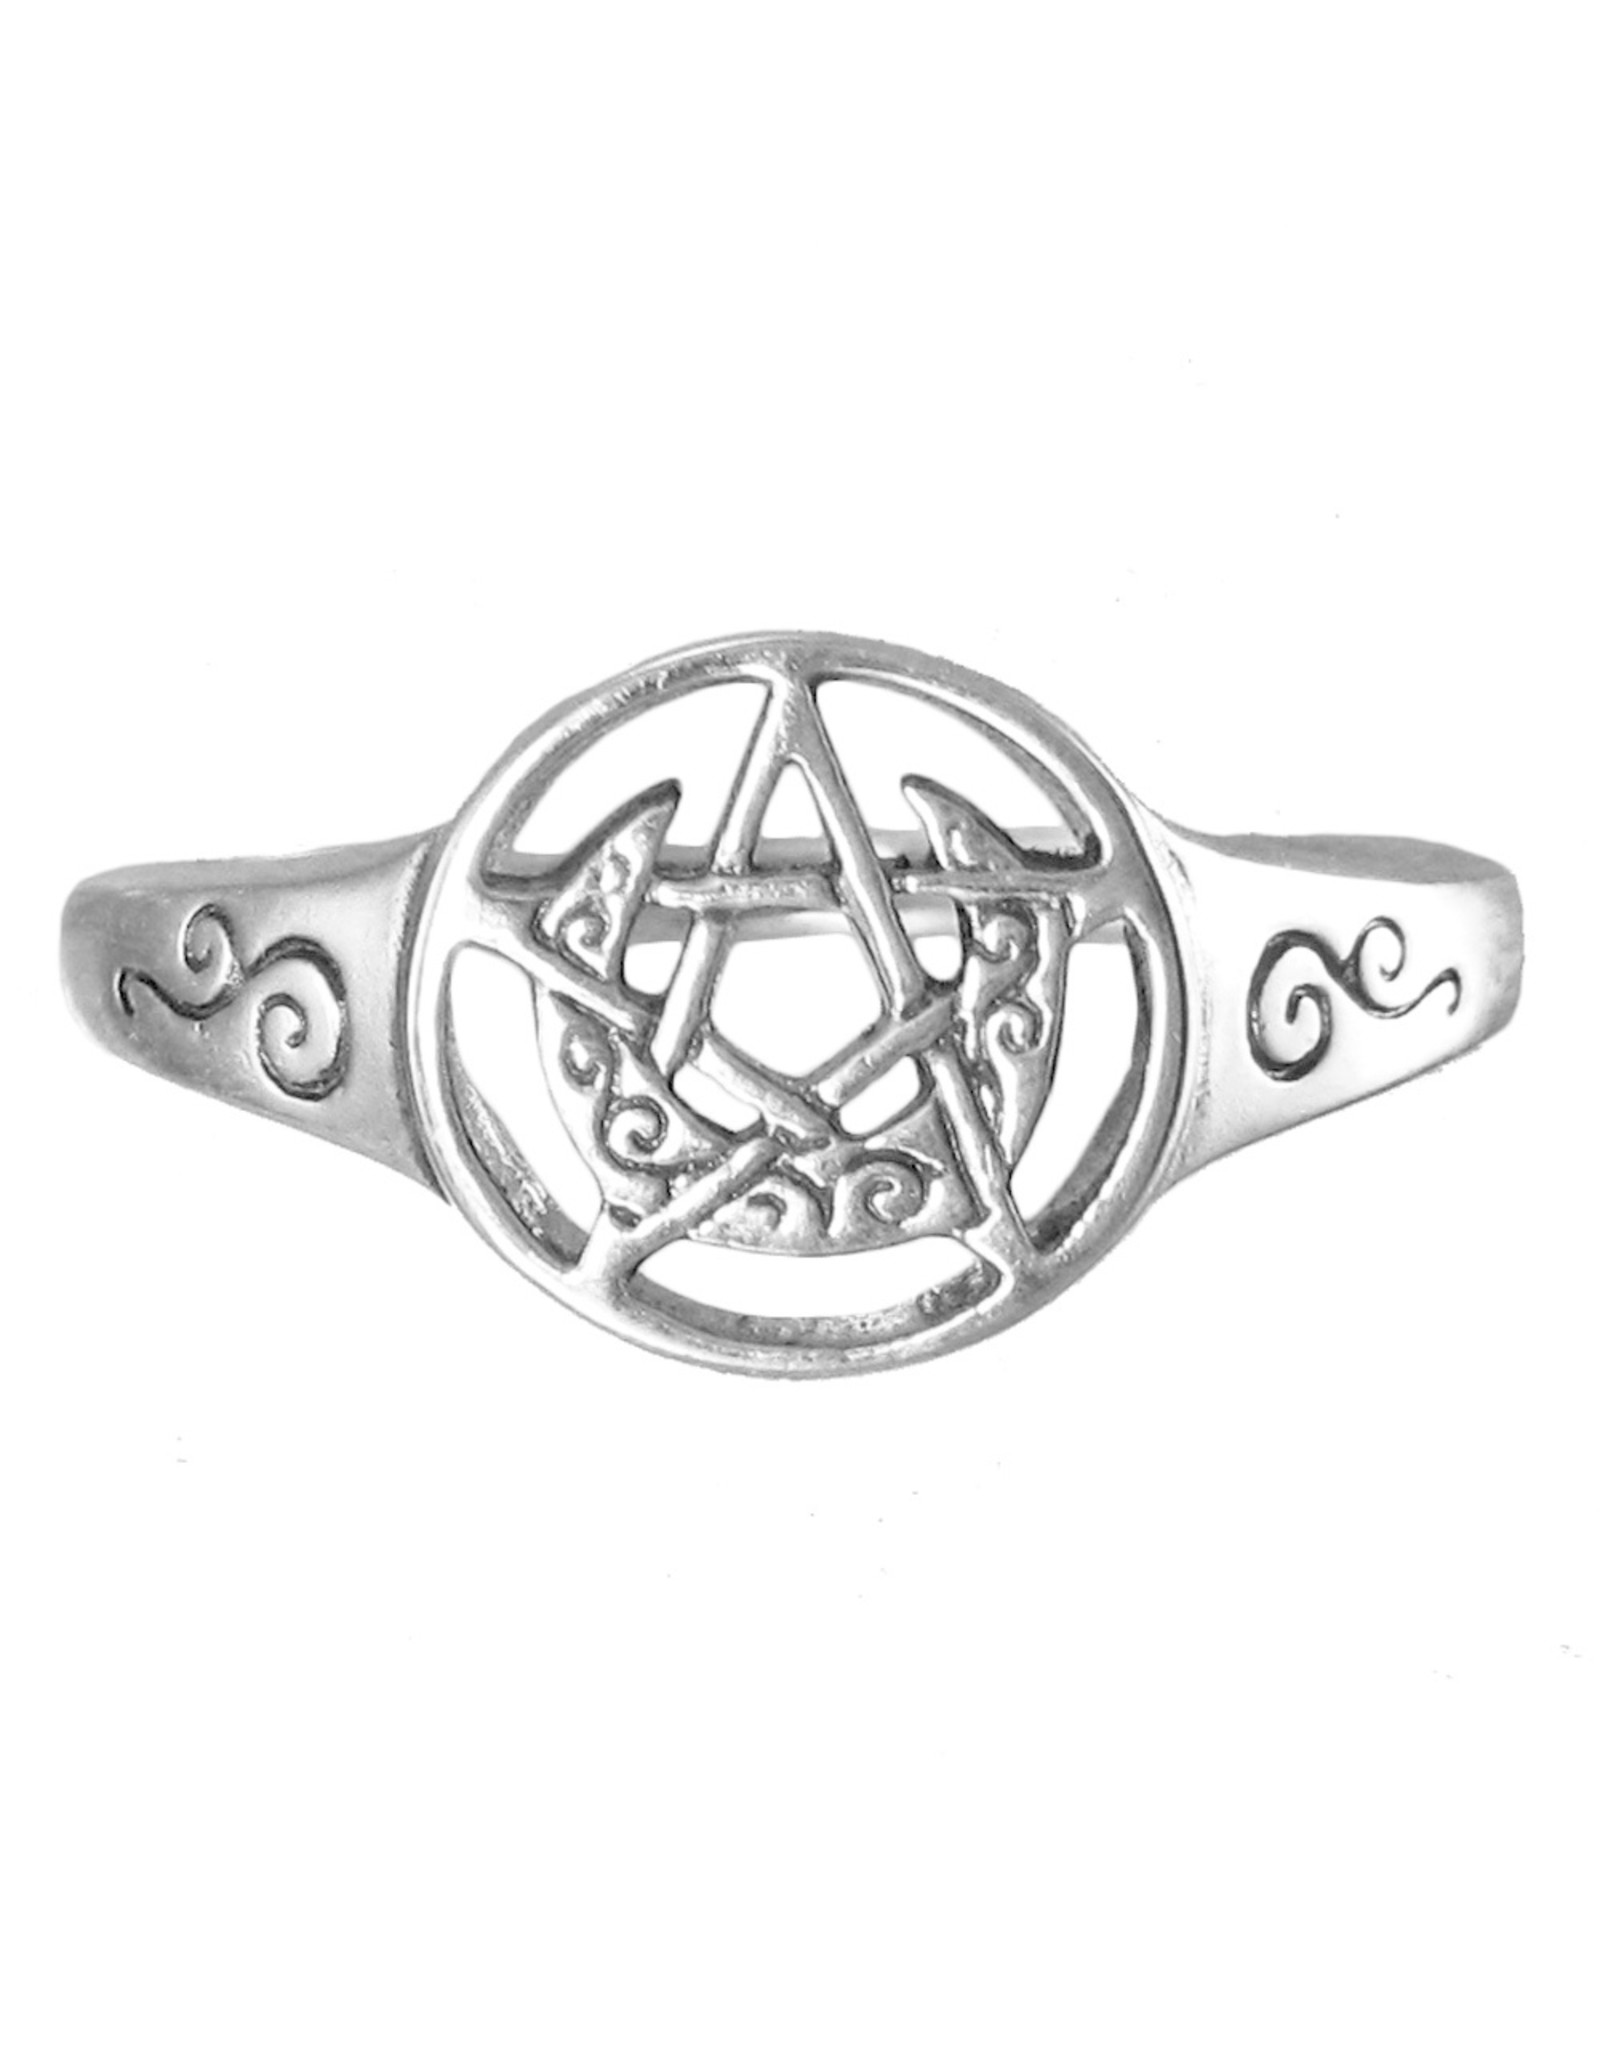 Crescent Moon Pentacle Ring in Sterling Silver